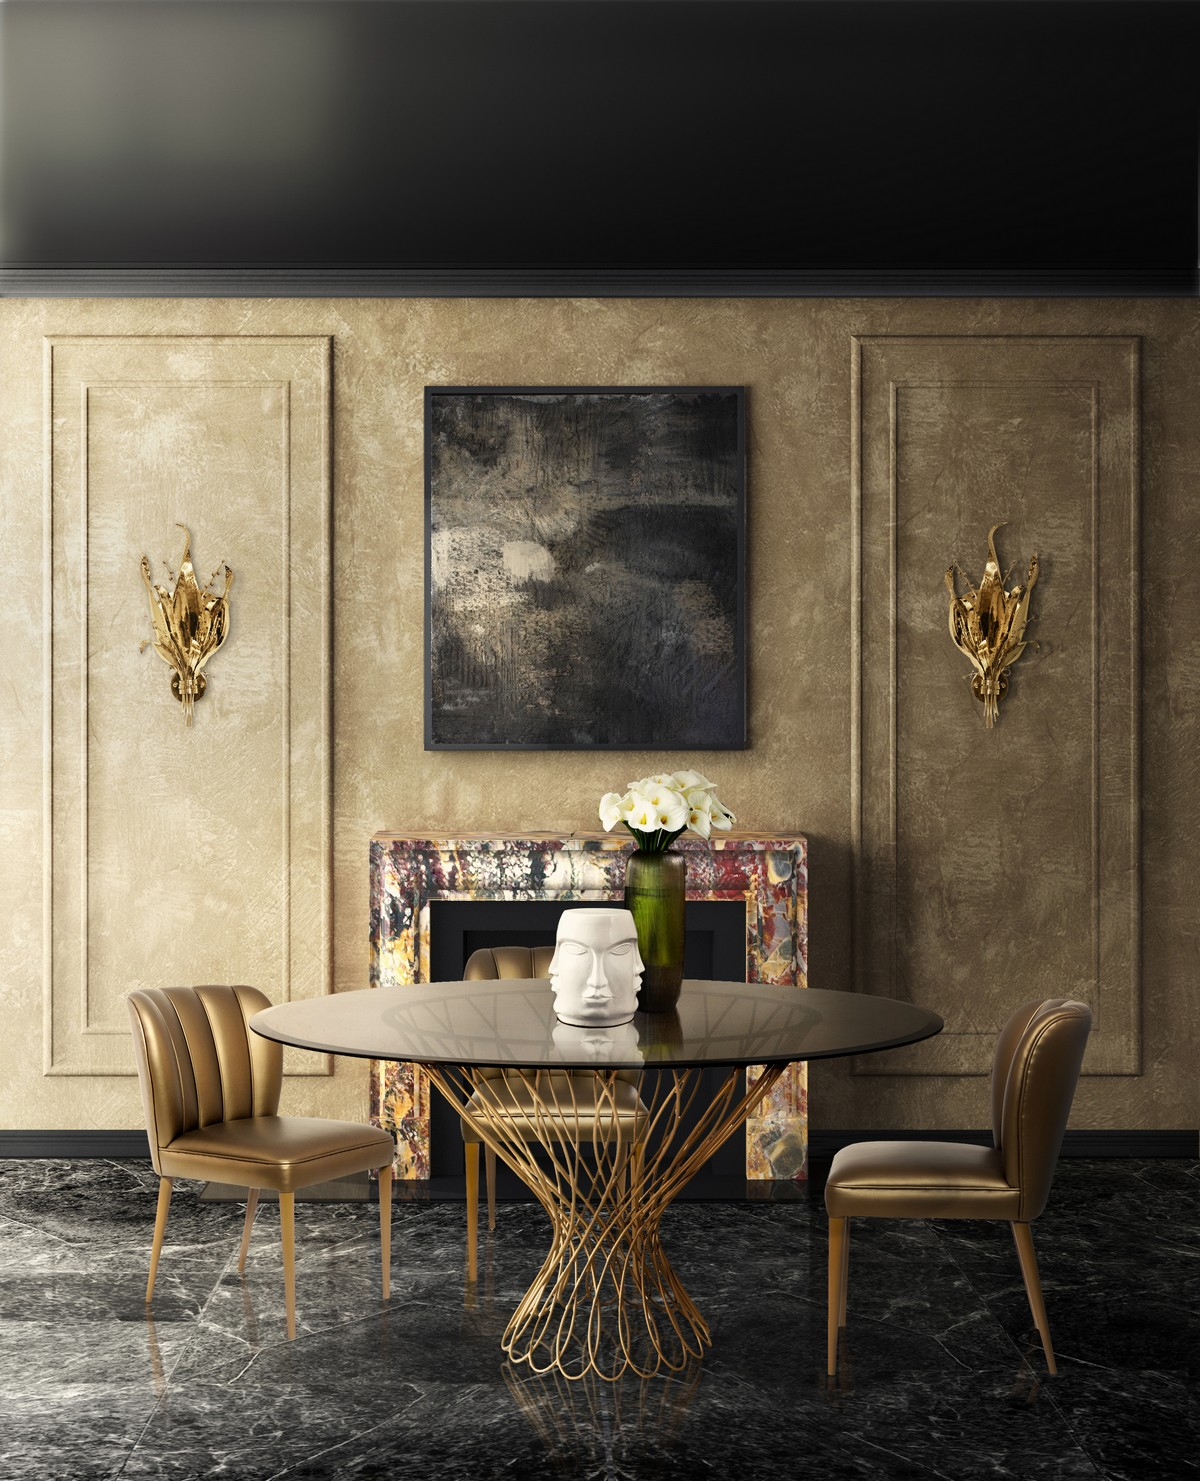 Curated Design: Contemporary Dining Room Ambiances contemporary dining room Curated Design: Contemporary Dining Room Ambiances 2 4